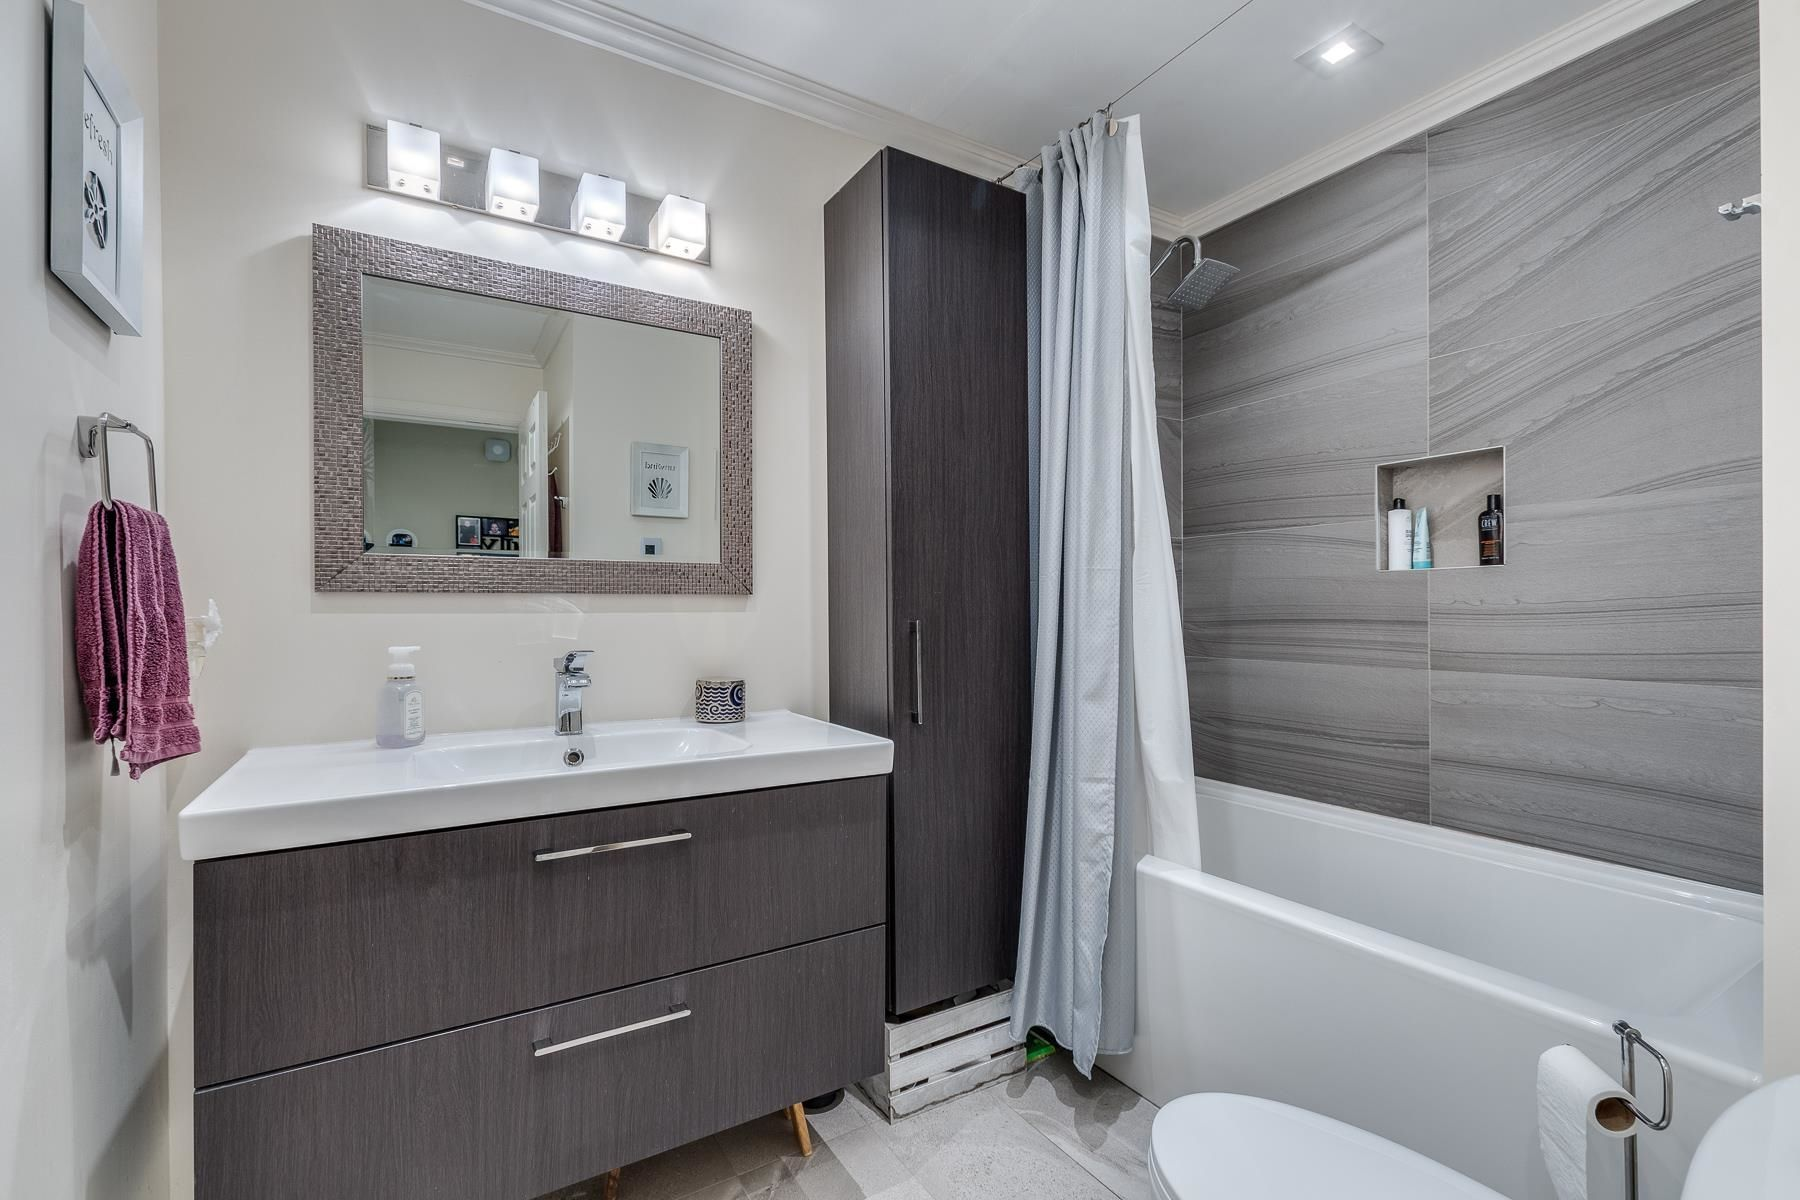 Photo 14: Photos: 3671 SOMERSET Street in Port Coquitlam: Lincoln Park PQ House for sale : MLS®# R2610216